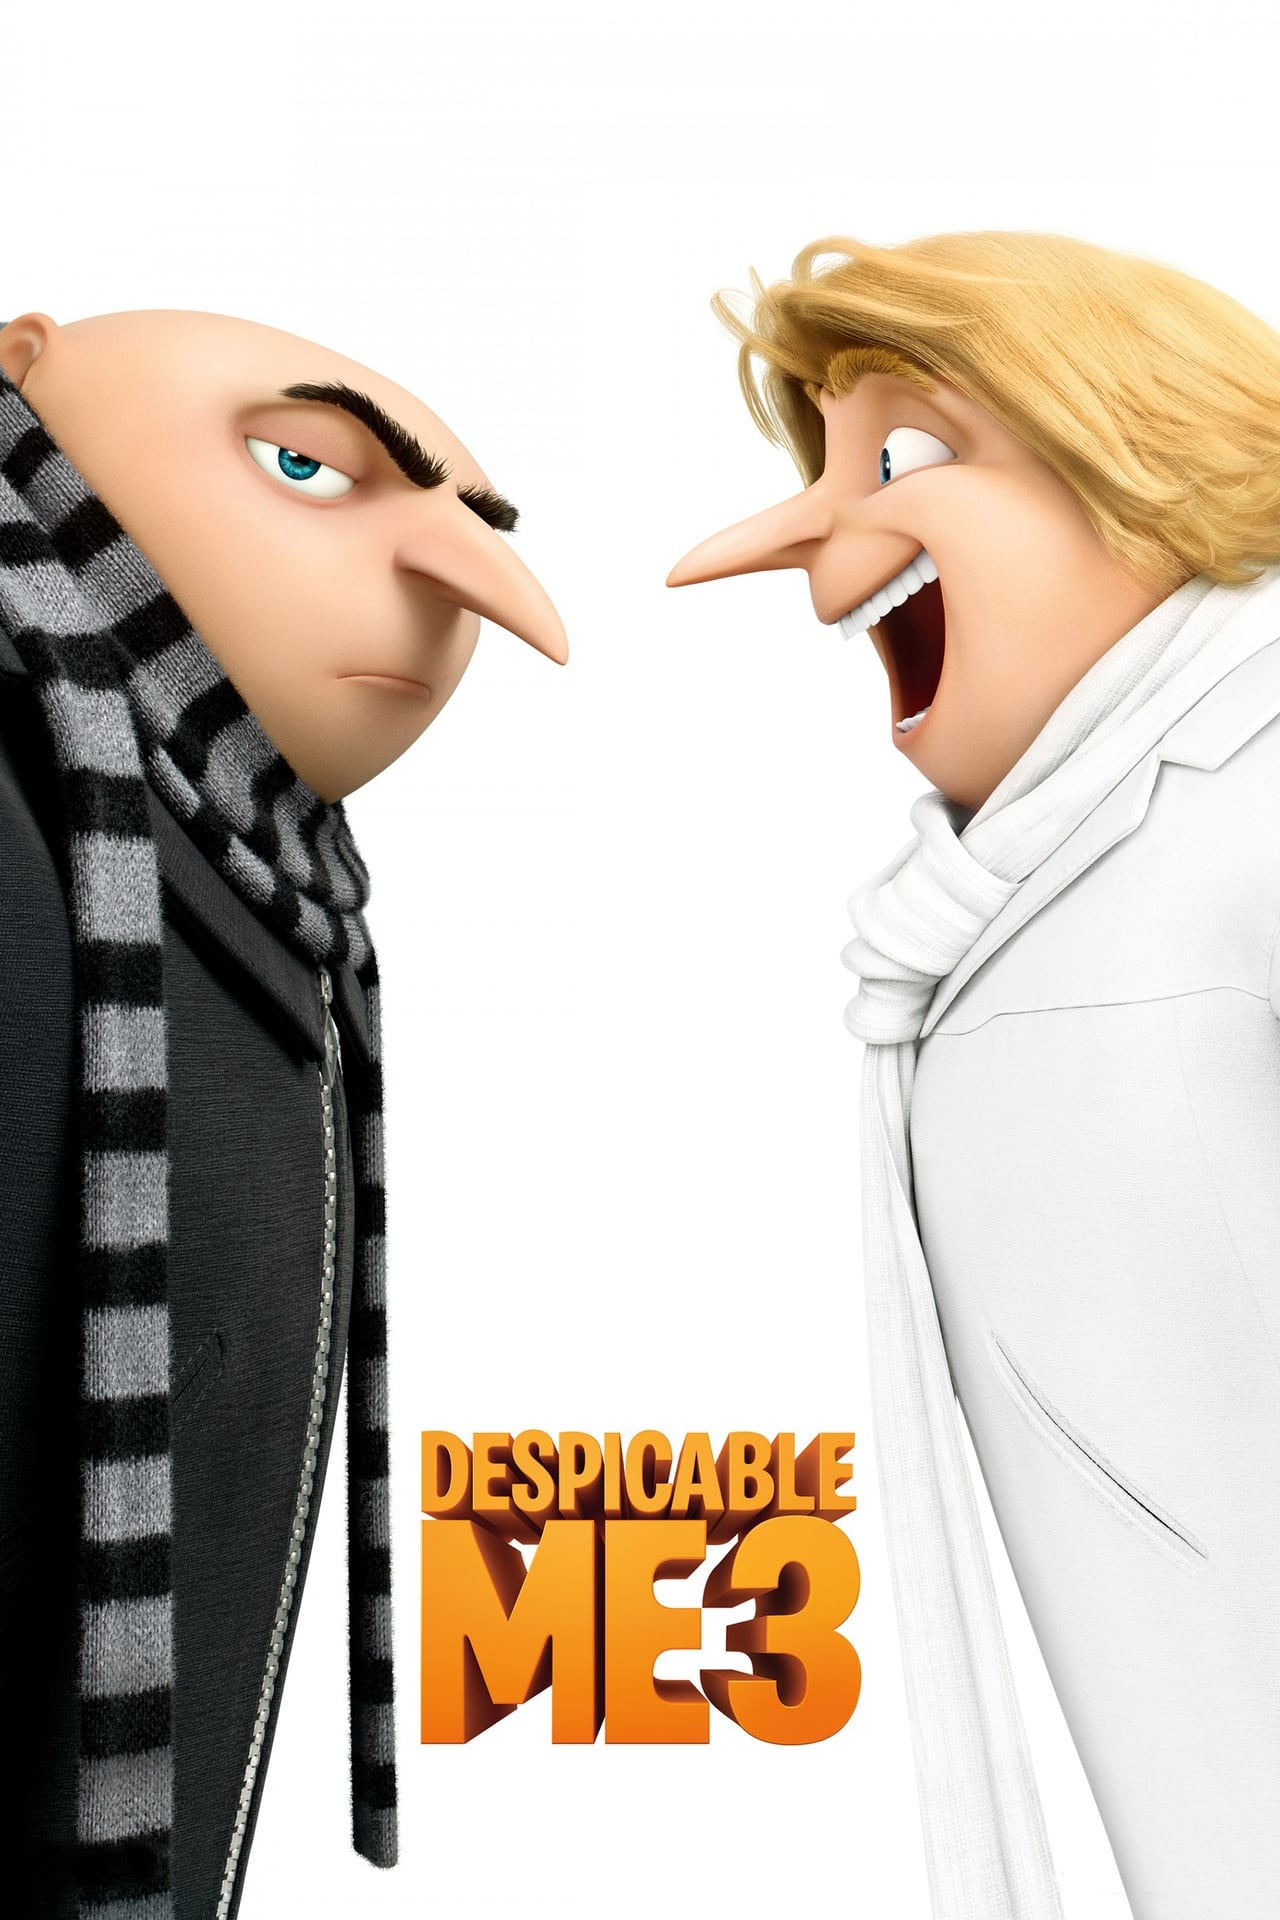 [FullMovie] [HD] Despicable Me 3 (2017) Full Episode HD1080P